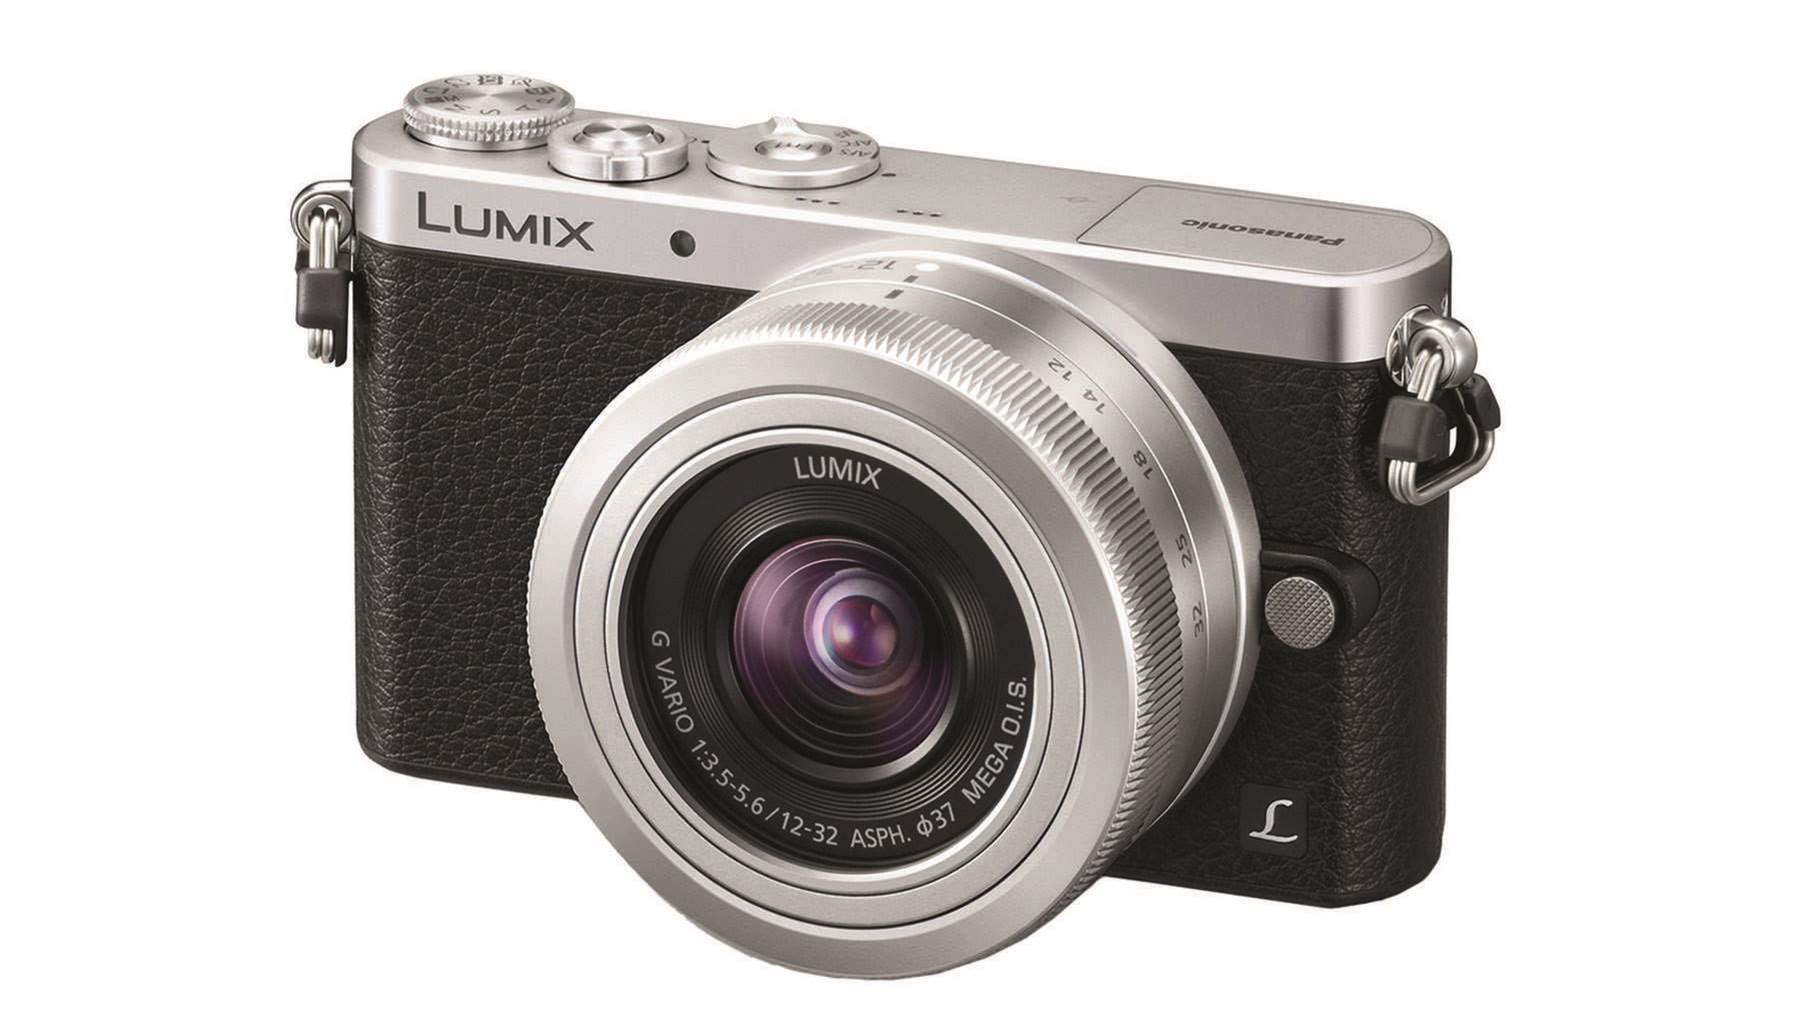 Review: Panasonic Lumix DMC-GM1